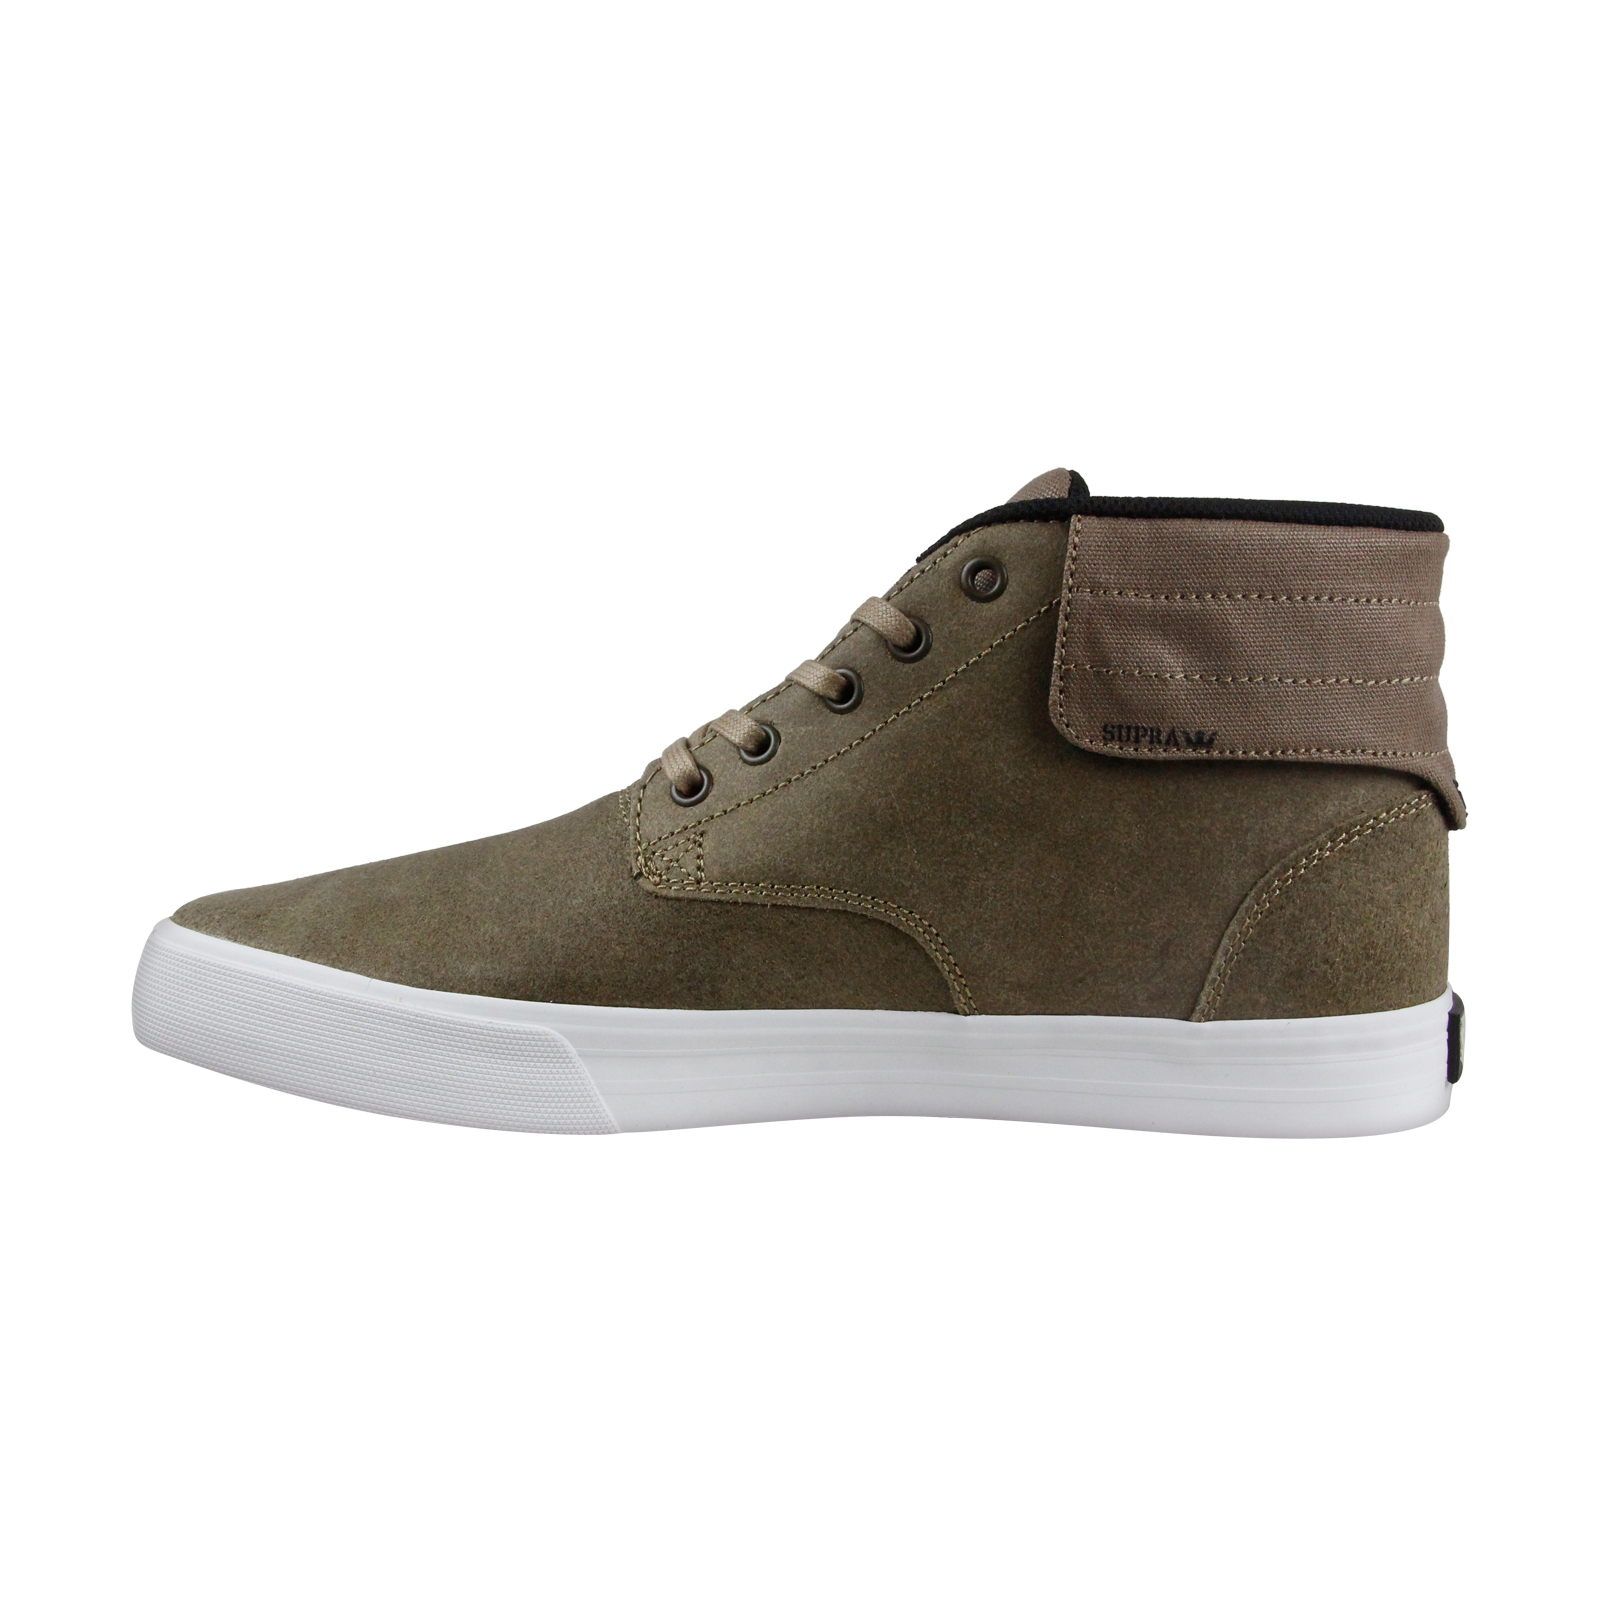 Supra-Passion-Mens-Brown-Leather-High-Top-Lace-Up-Sneakers-Shoes